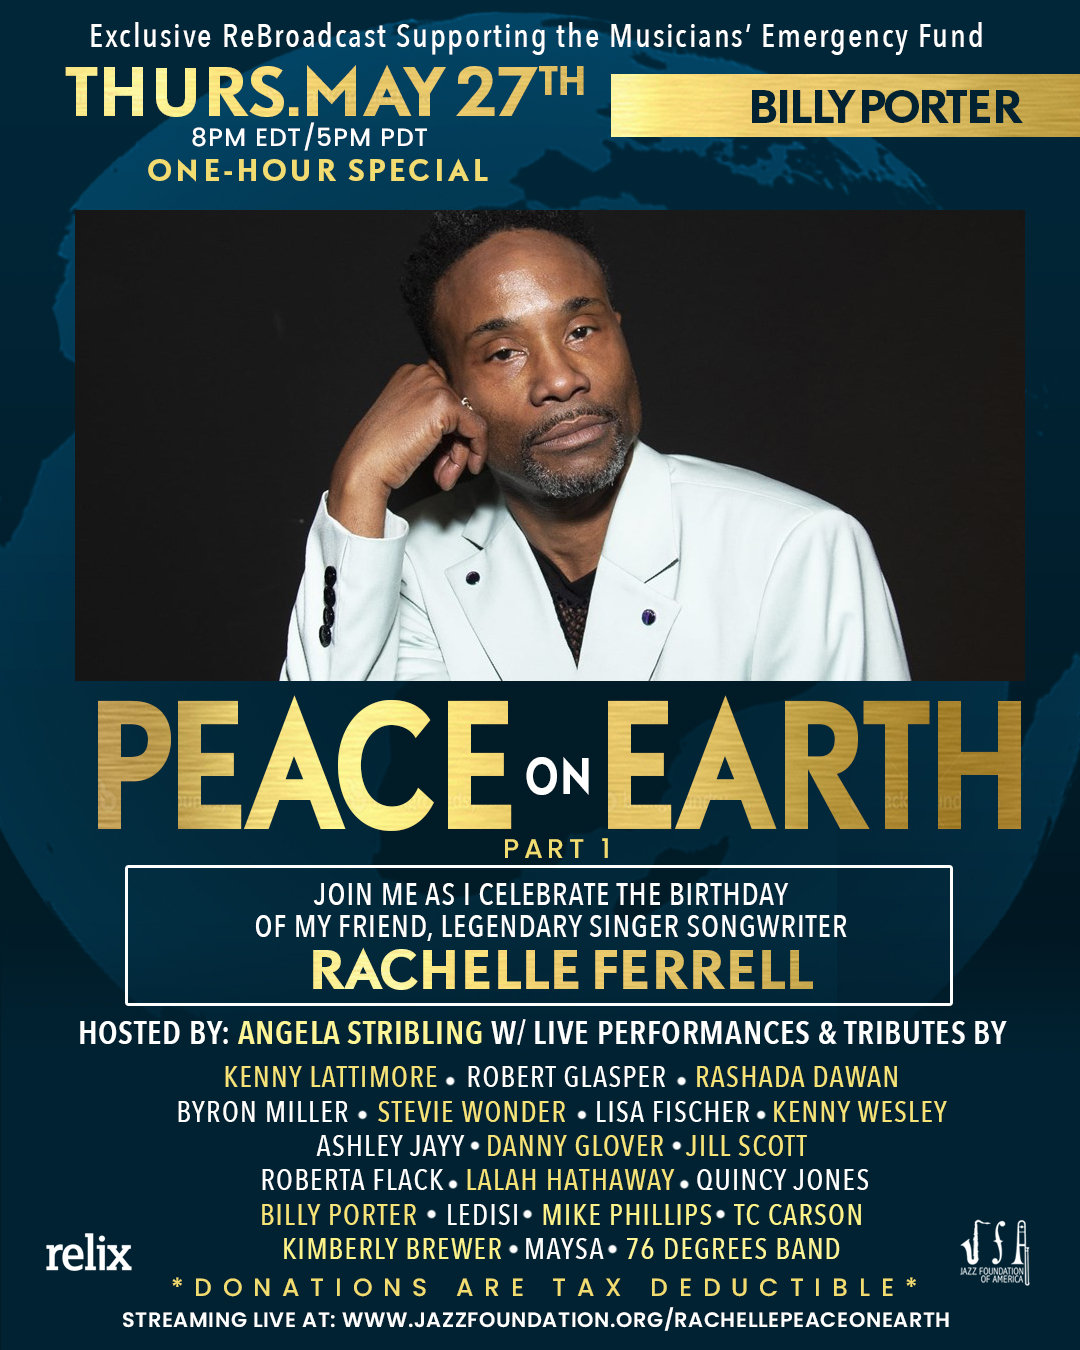 PeaceOnEarthBillyPorter